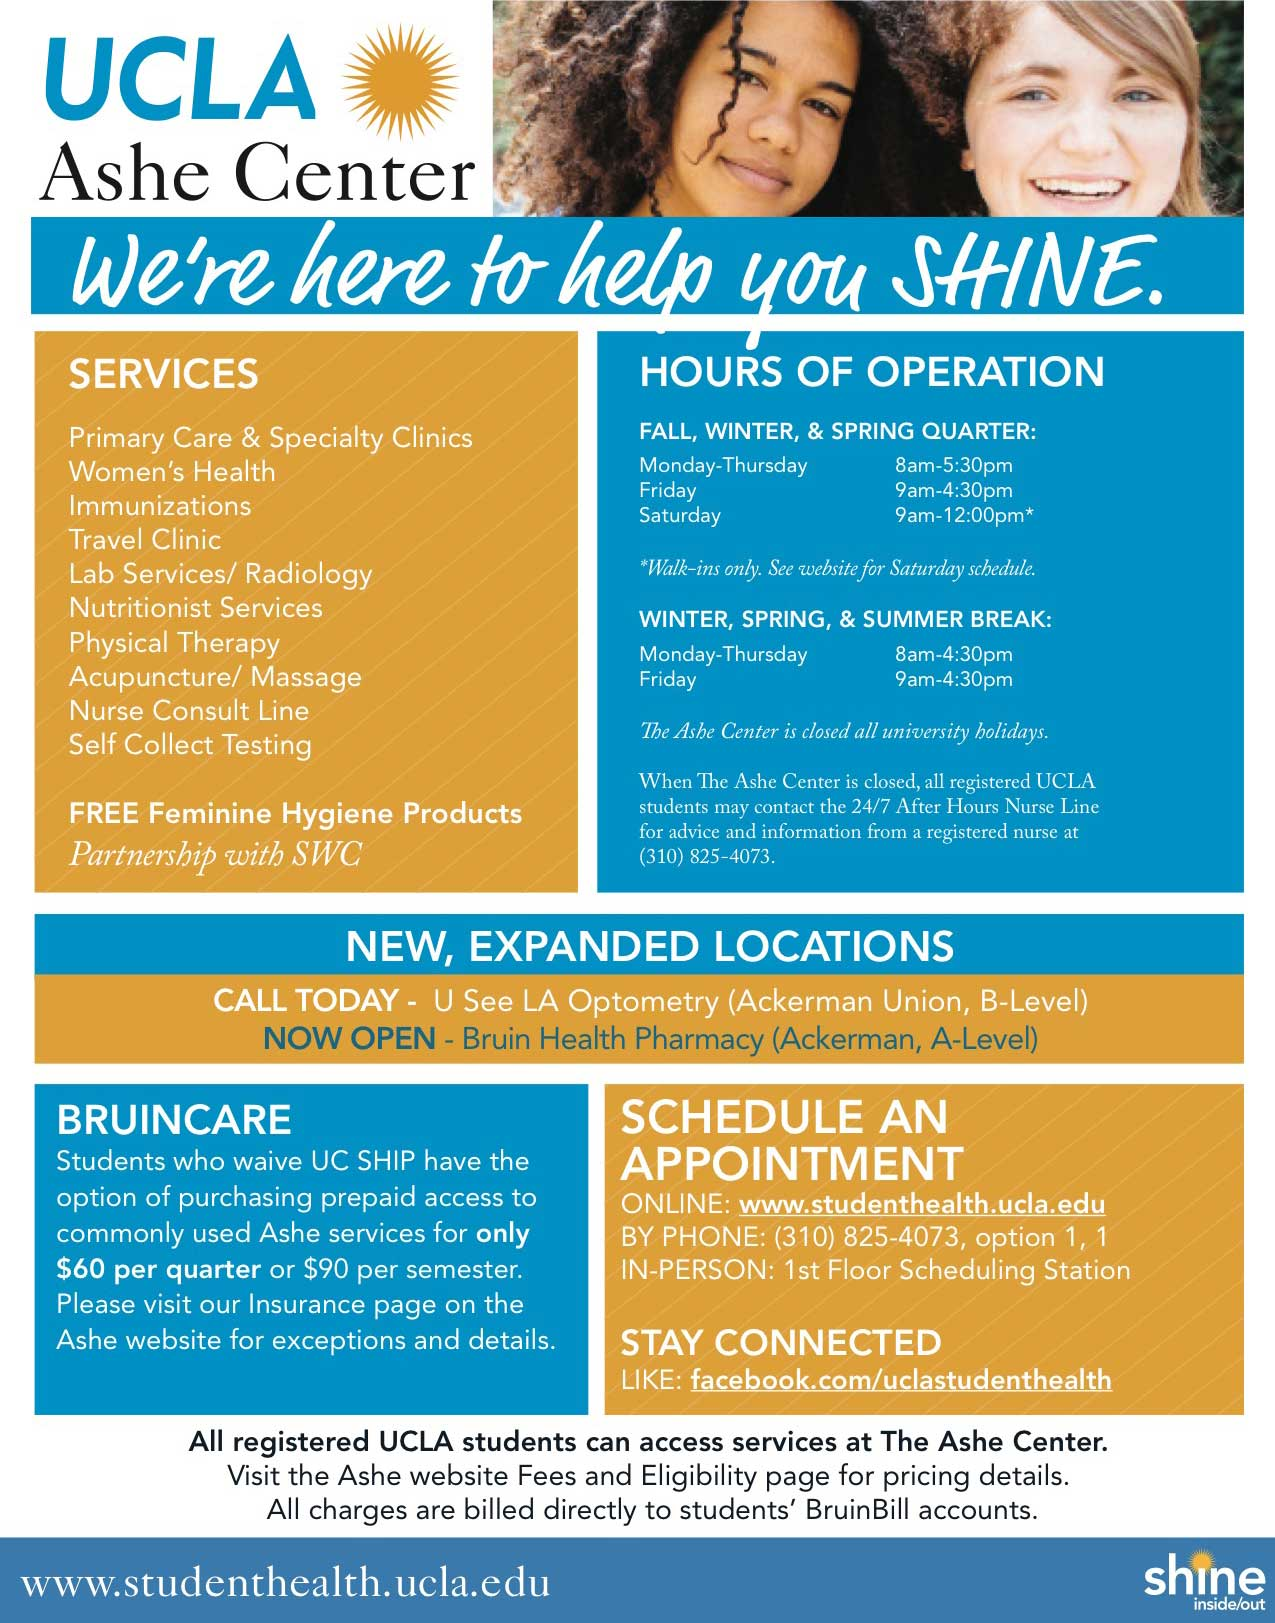 UCLA Ashe Center: We're here to help you SHINE.